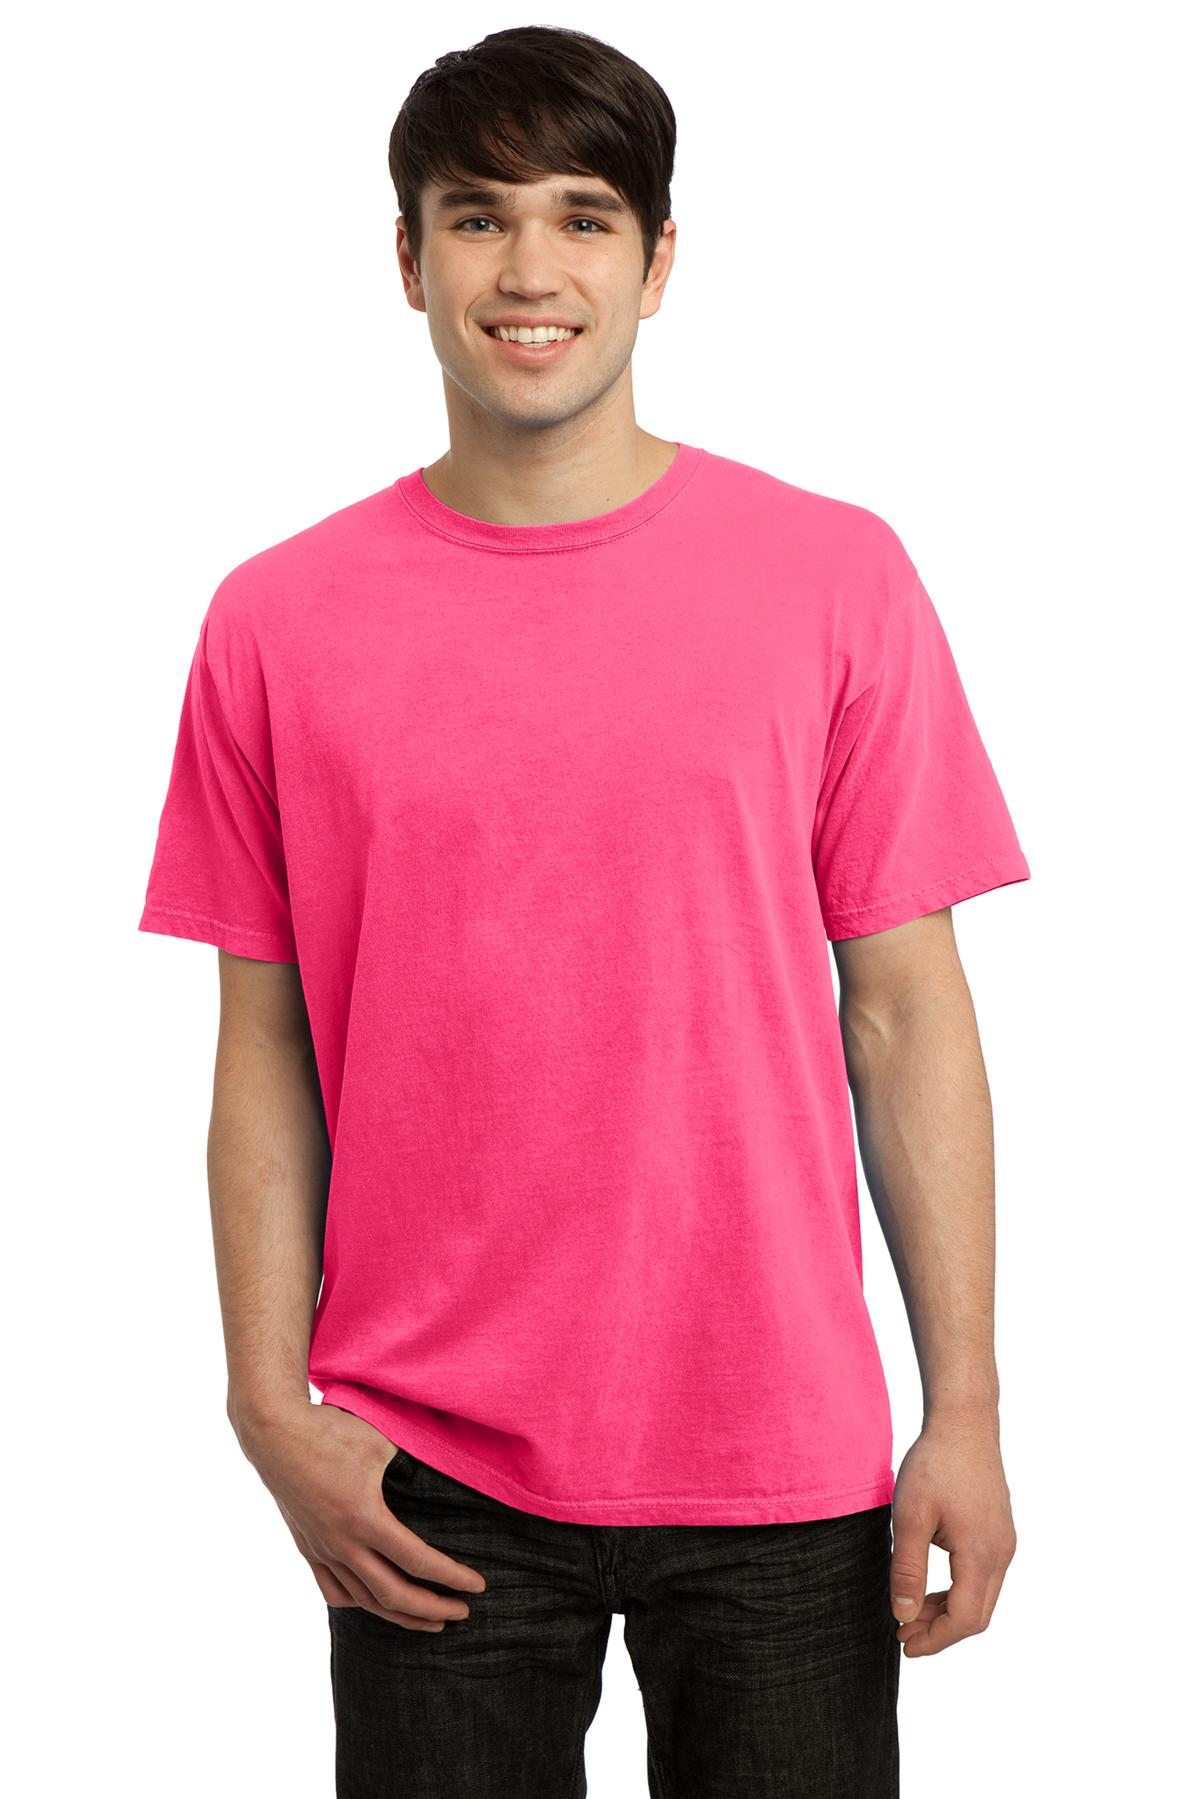 Port & Company Pigment-Dyed Tee. Neon Yellow. 4XL.